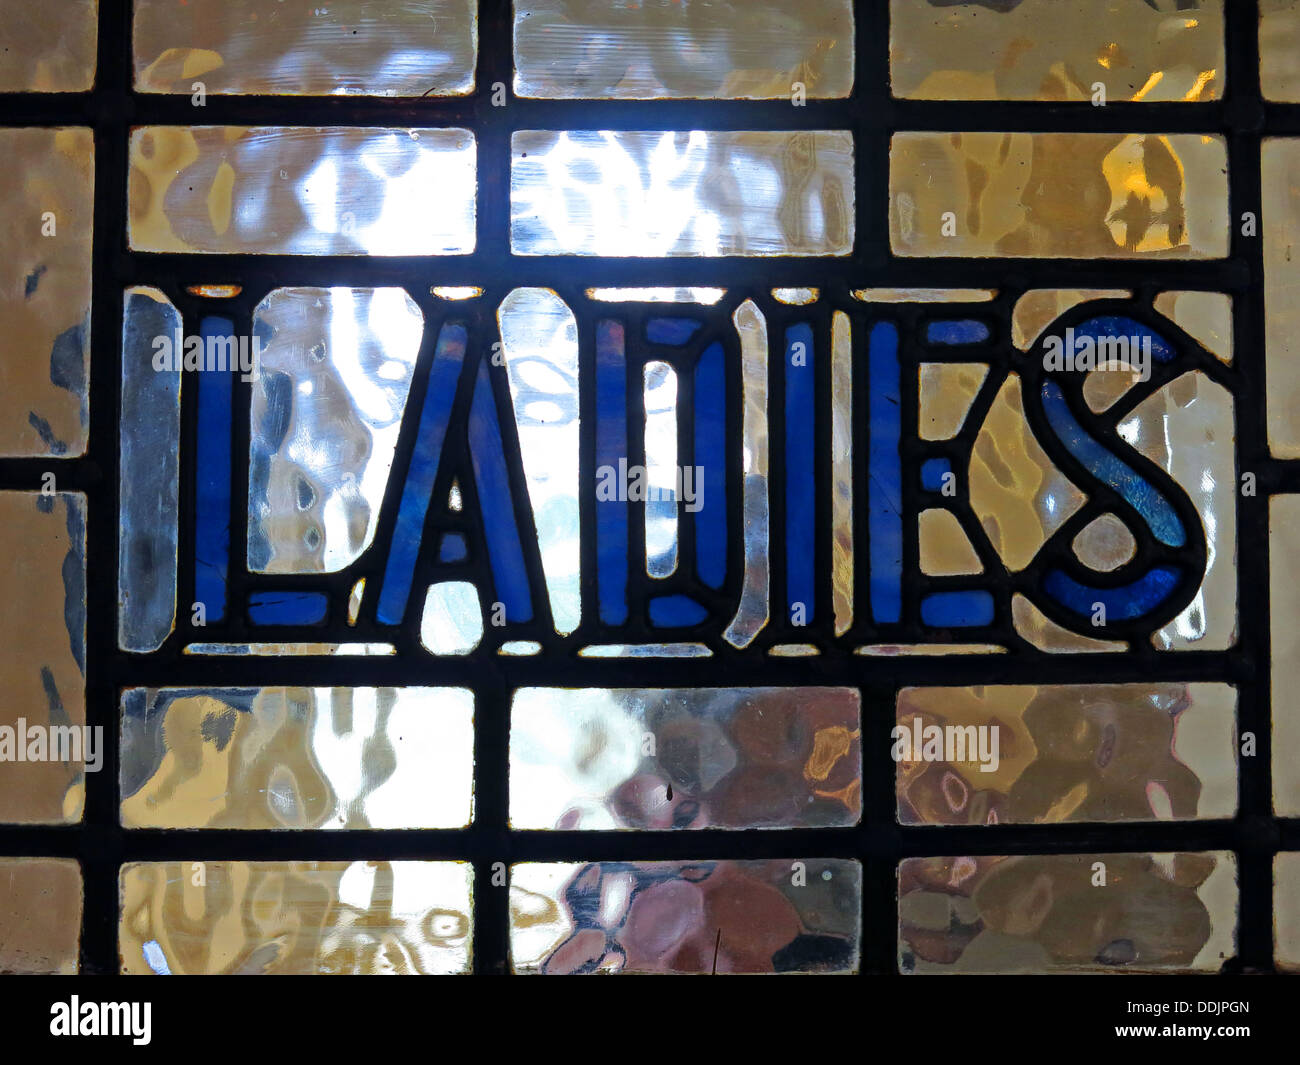 lady,ladys,ornate,pub,bar,public,house,english,british,GB,great,britain,light,coming,through,day,light,daylight,afternoon,toilets,doorway,entrance,to,a,gotonysmith,Buy Pictures of,Buy Images Of